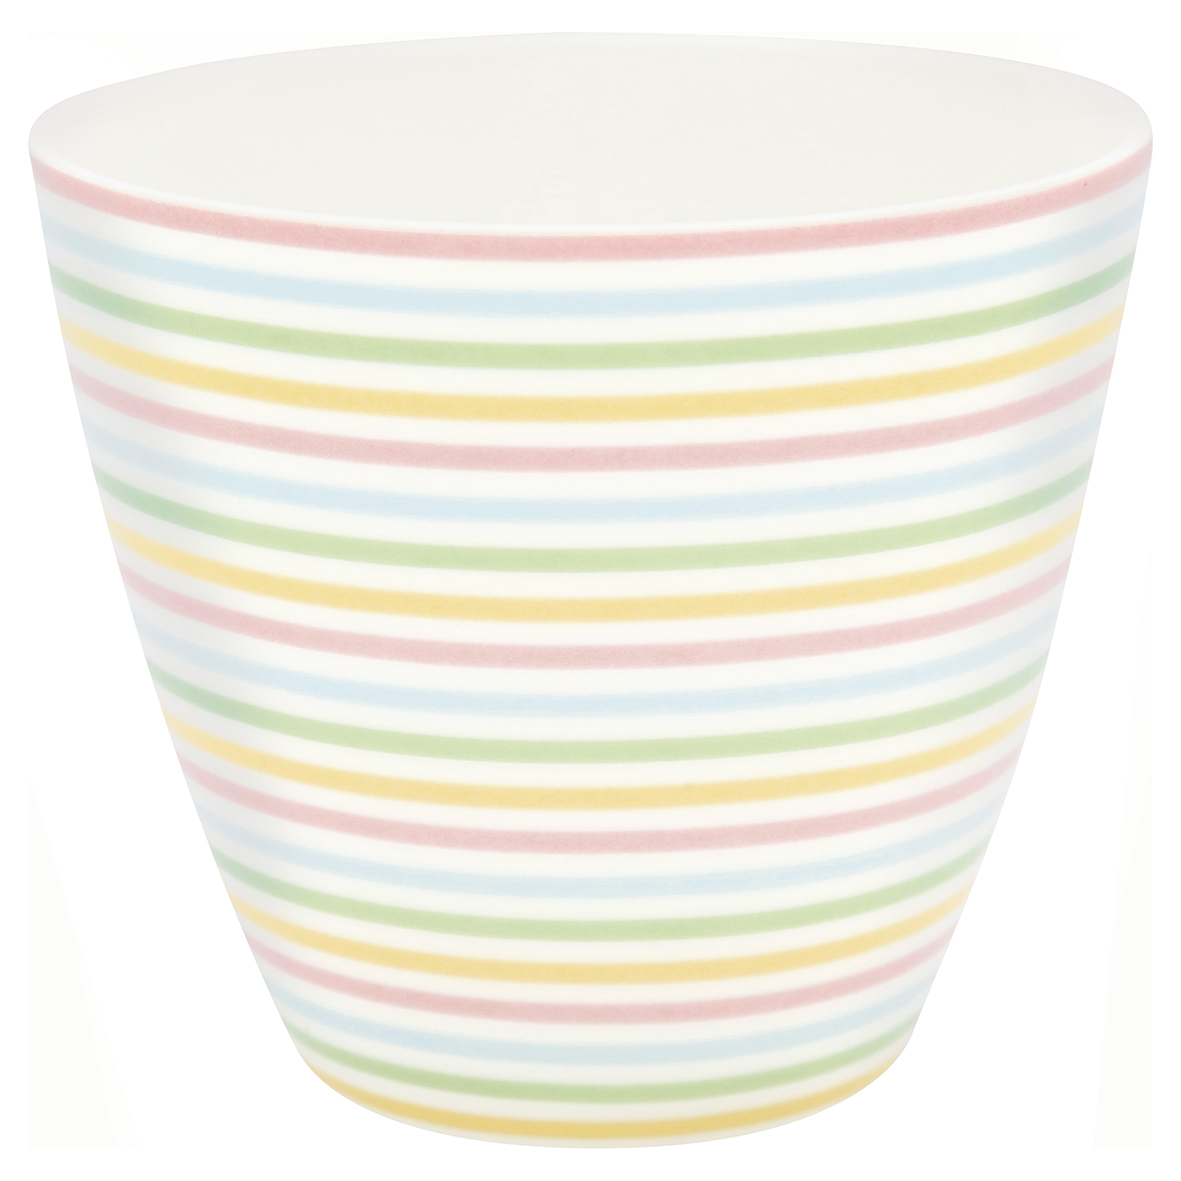 Latte Cup - Ansley white - Greengate